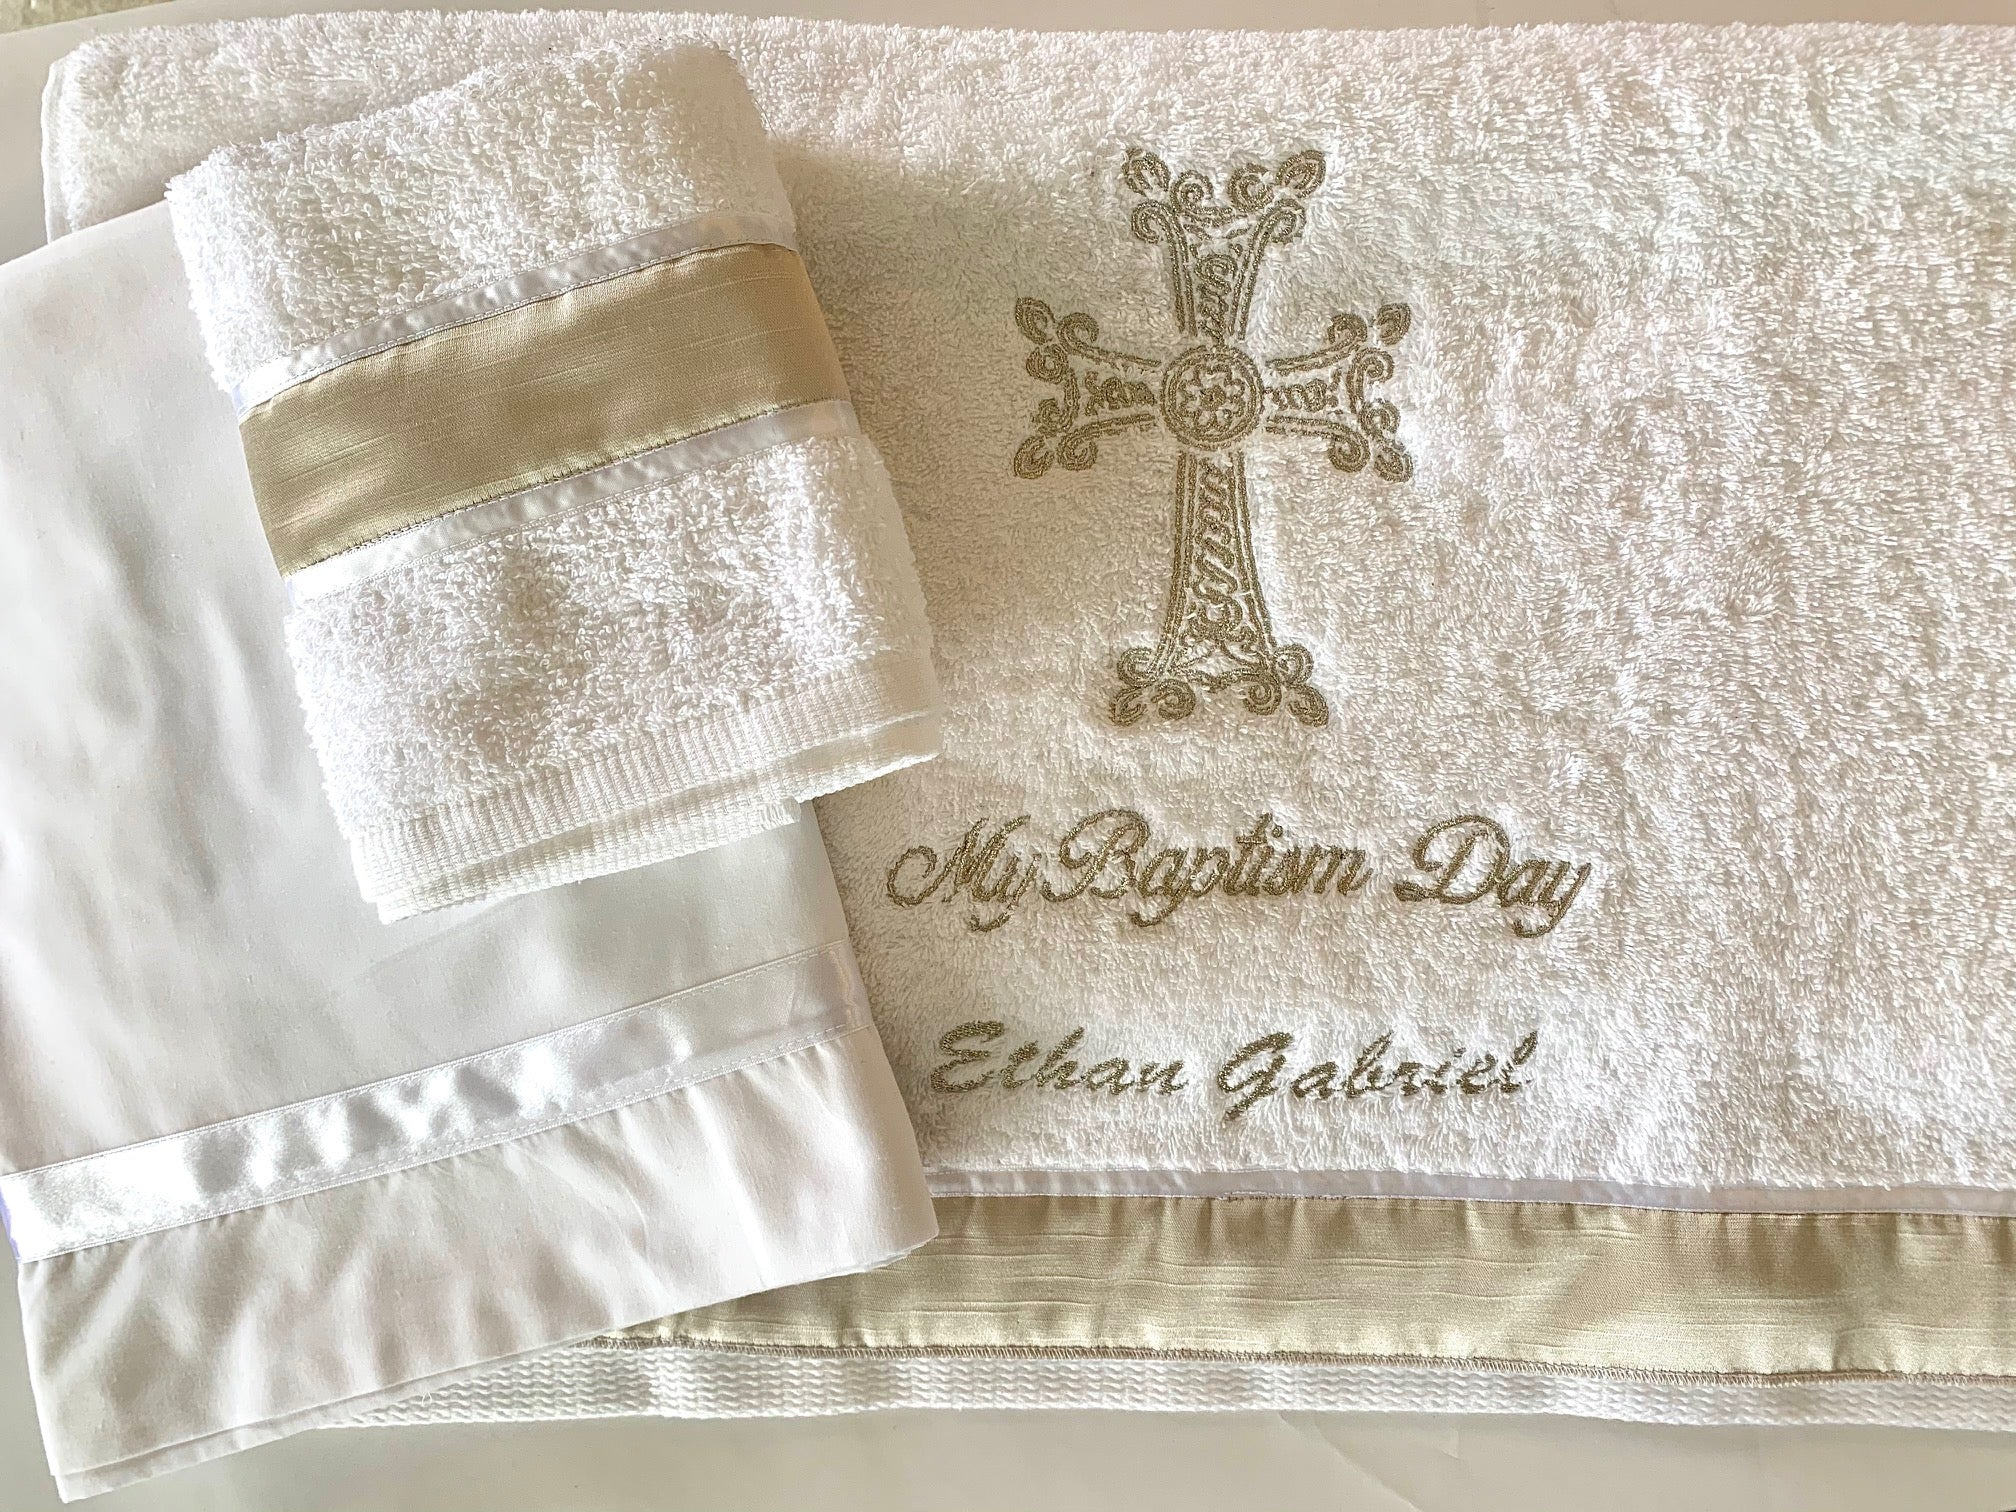 Embroidered Personalized Towel Set